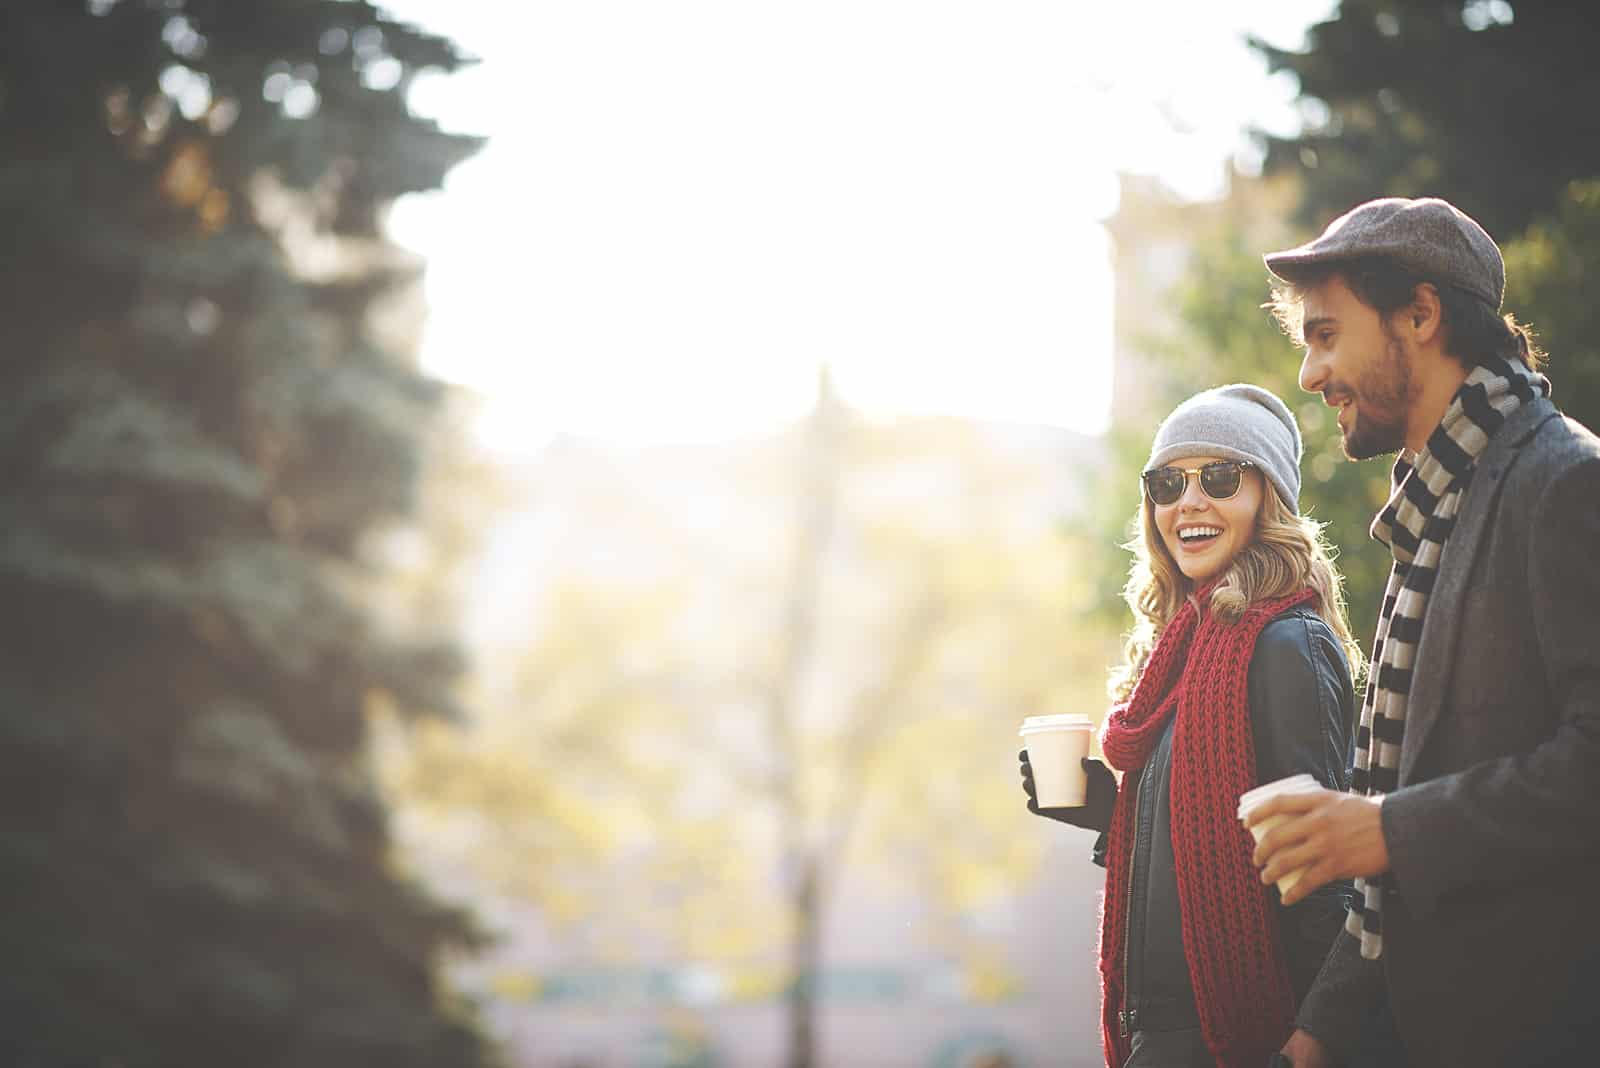 smiling woman listening to man while walking together